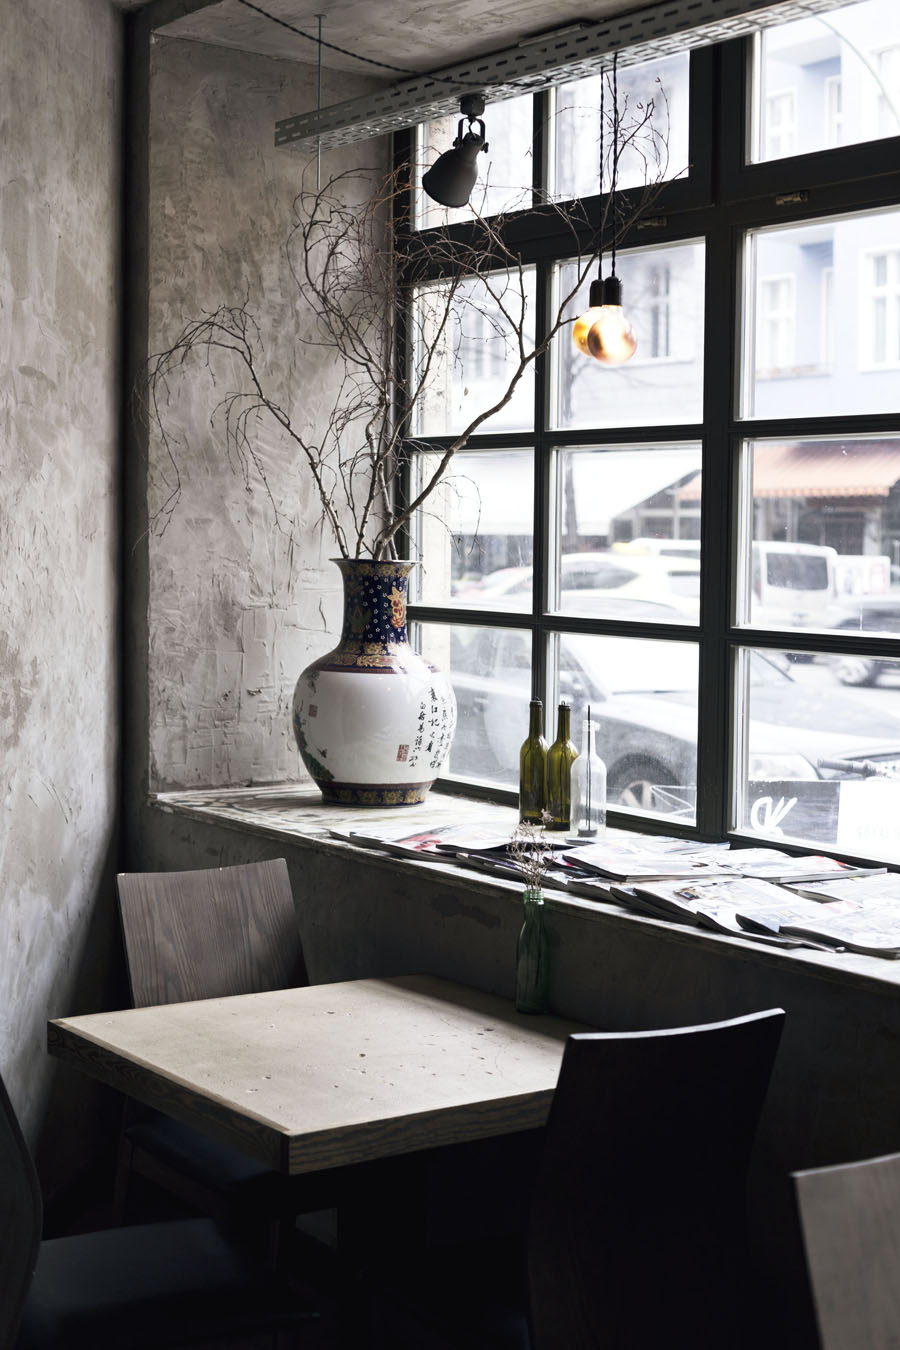 Royals &Rice Bar/Berlin, industrial interior design